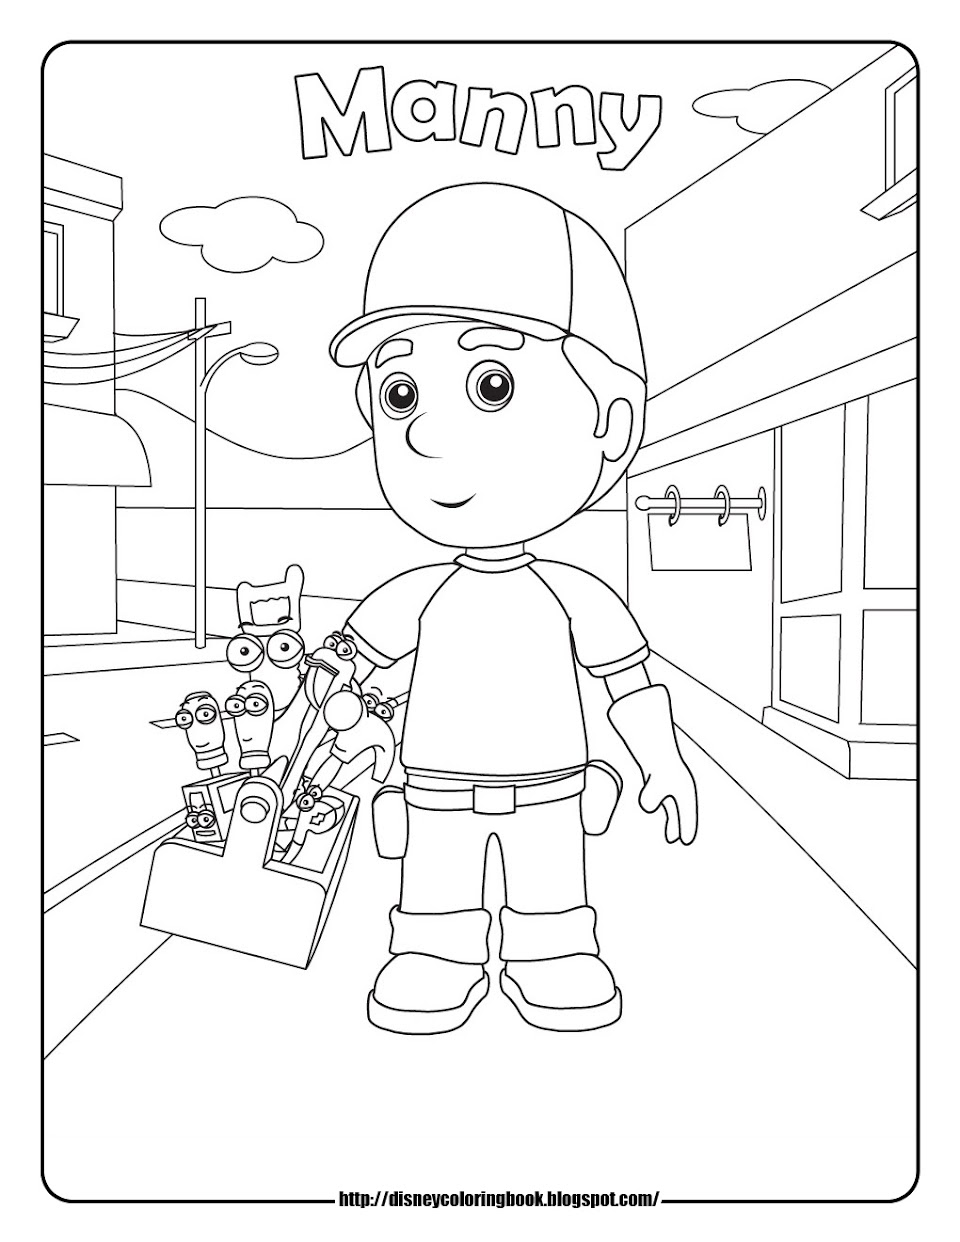 Coloring Pages God Made Me Coloring Pages god made me special coloring pages eassume com i am auromas